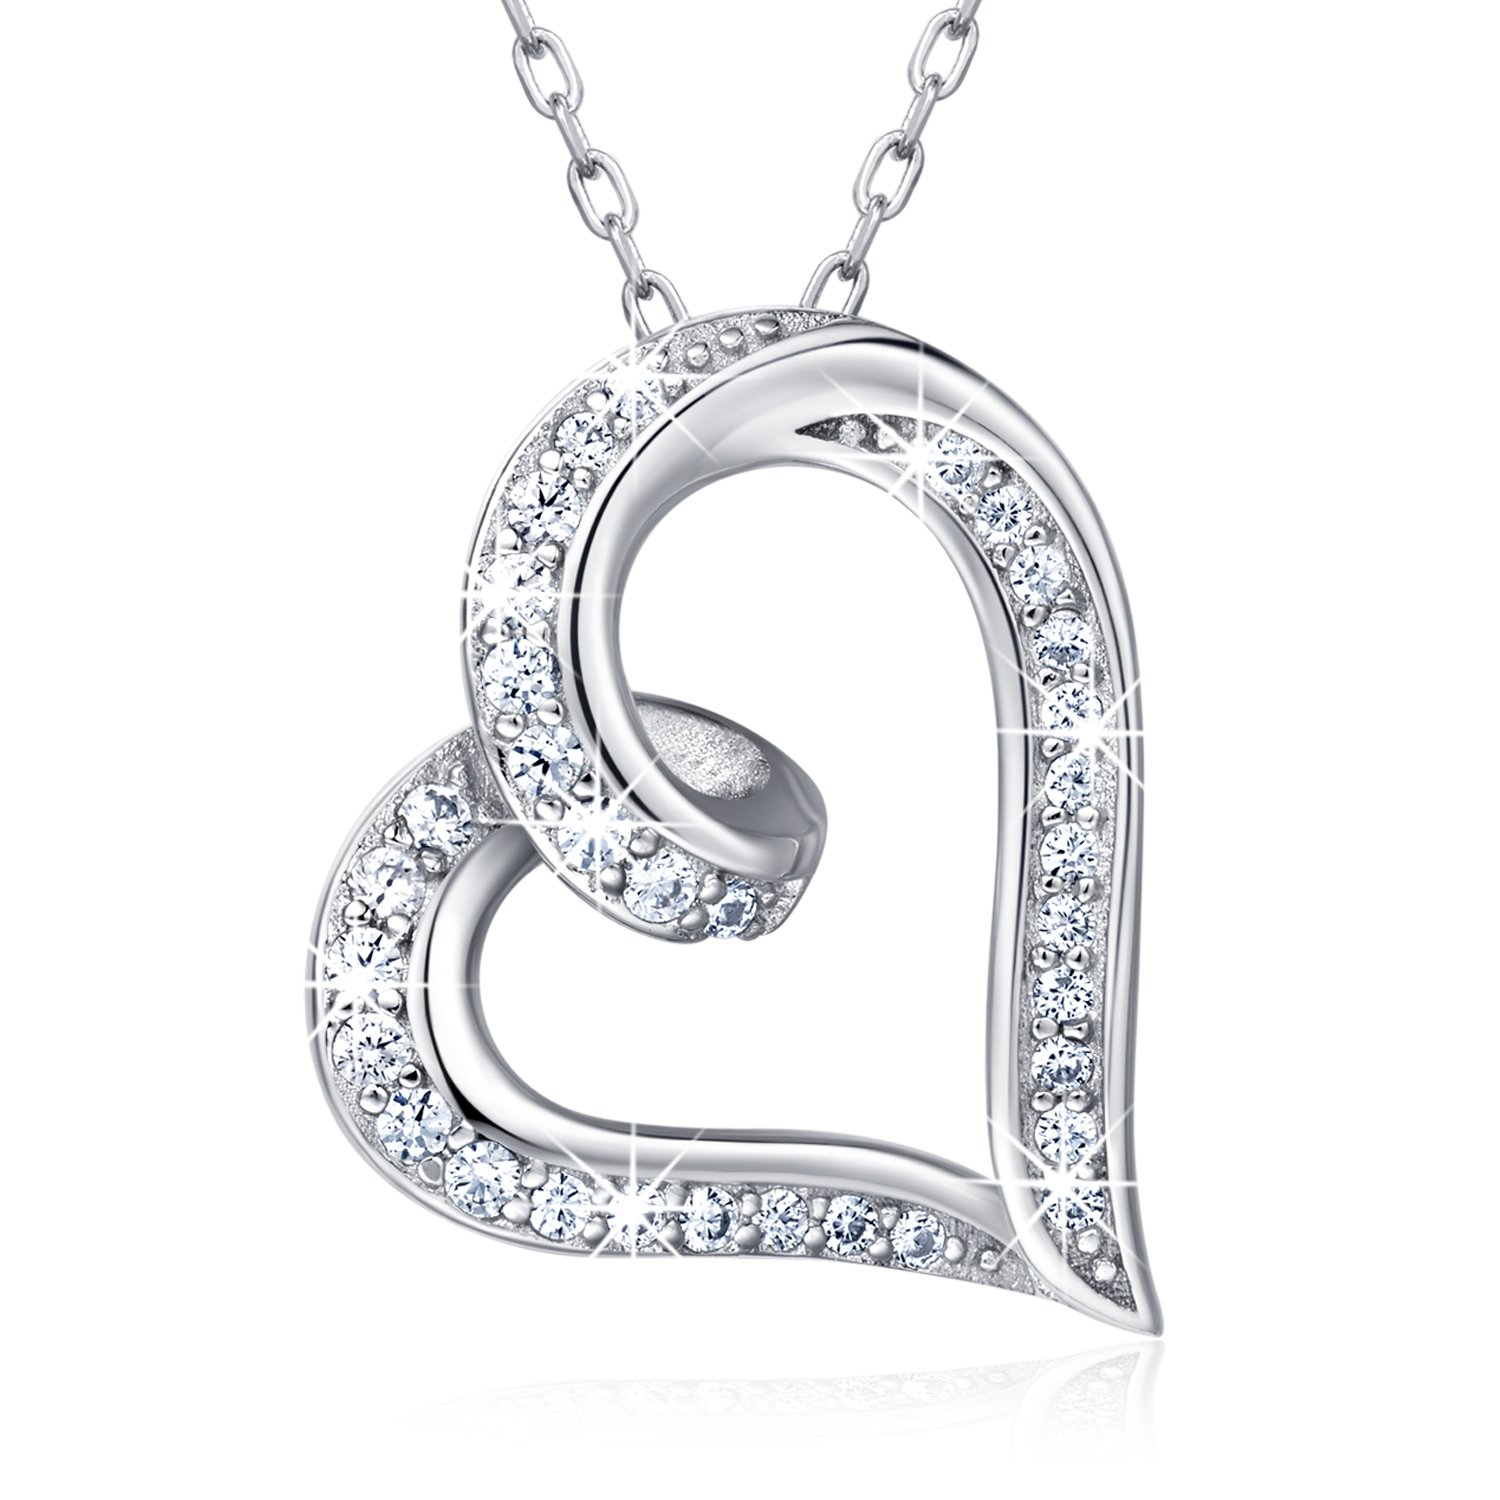 168fd553e DESIGN IDEA ♥ This sterling silver necklace twist as a infinity loop, it  just symbolizes an unbreakable connection, just like the relationship  between you ...